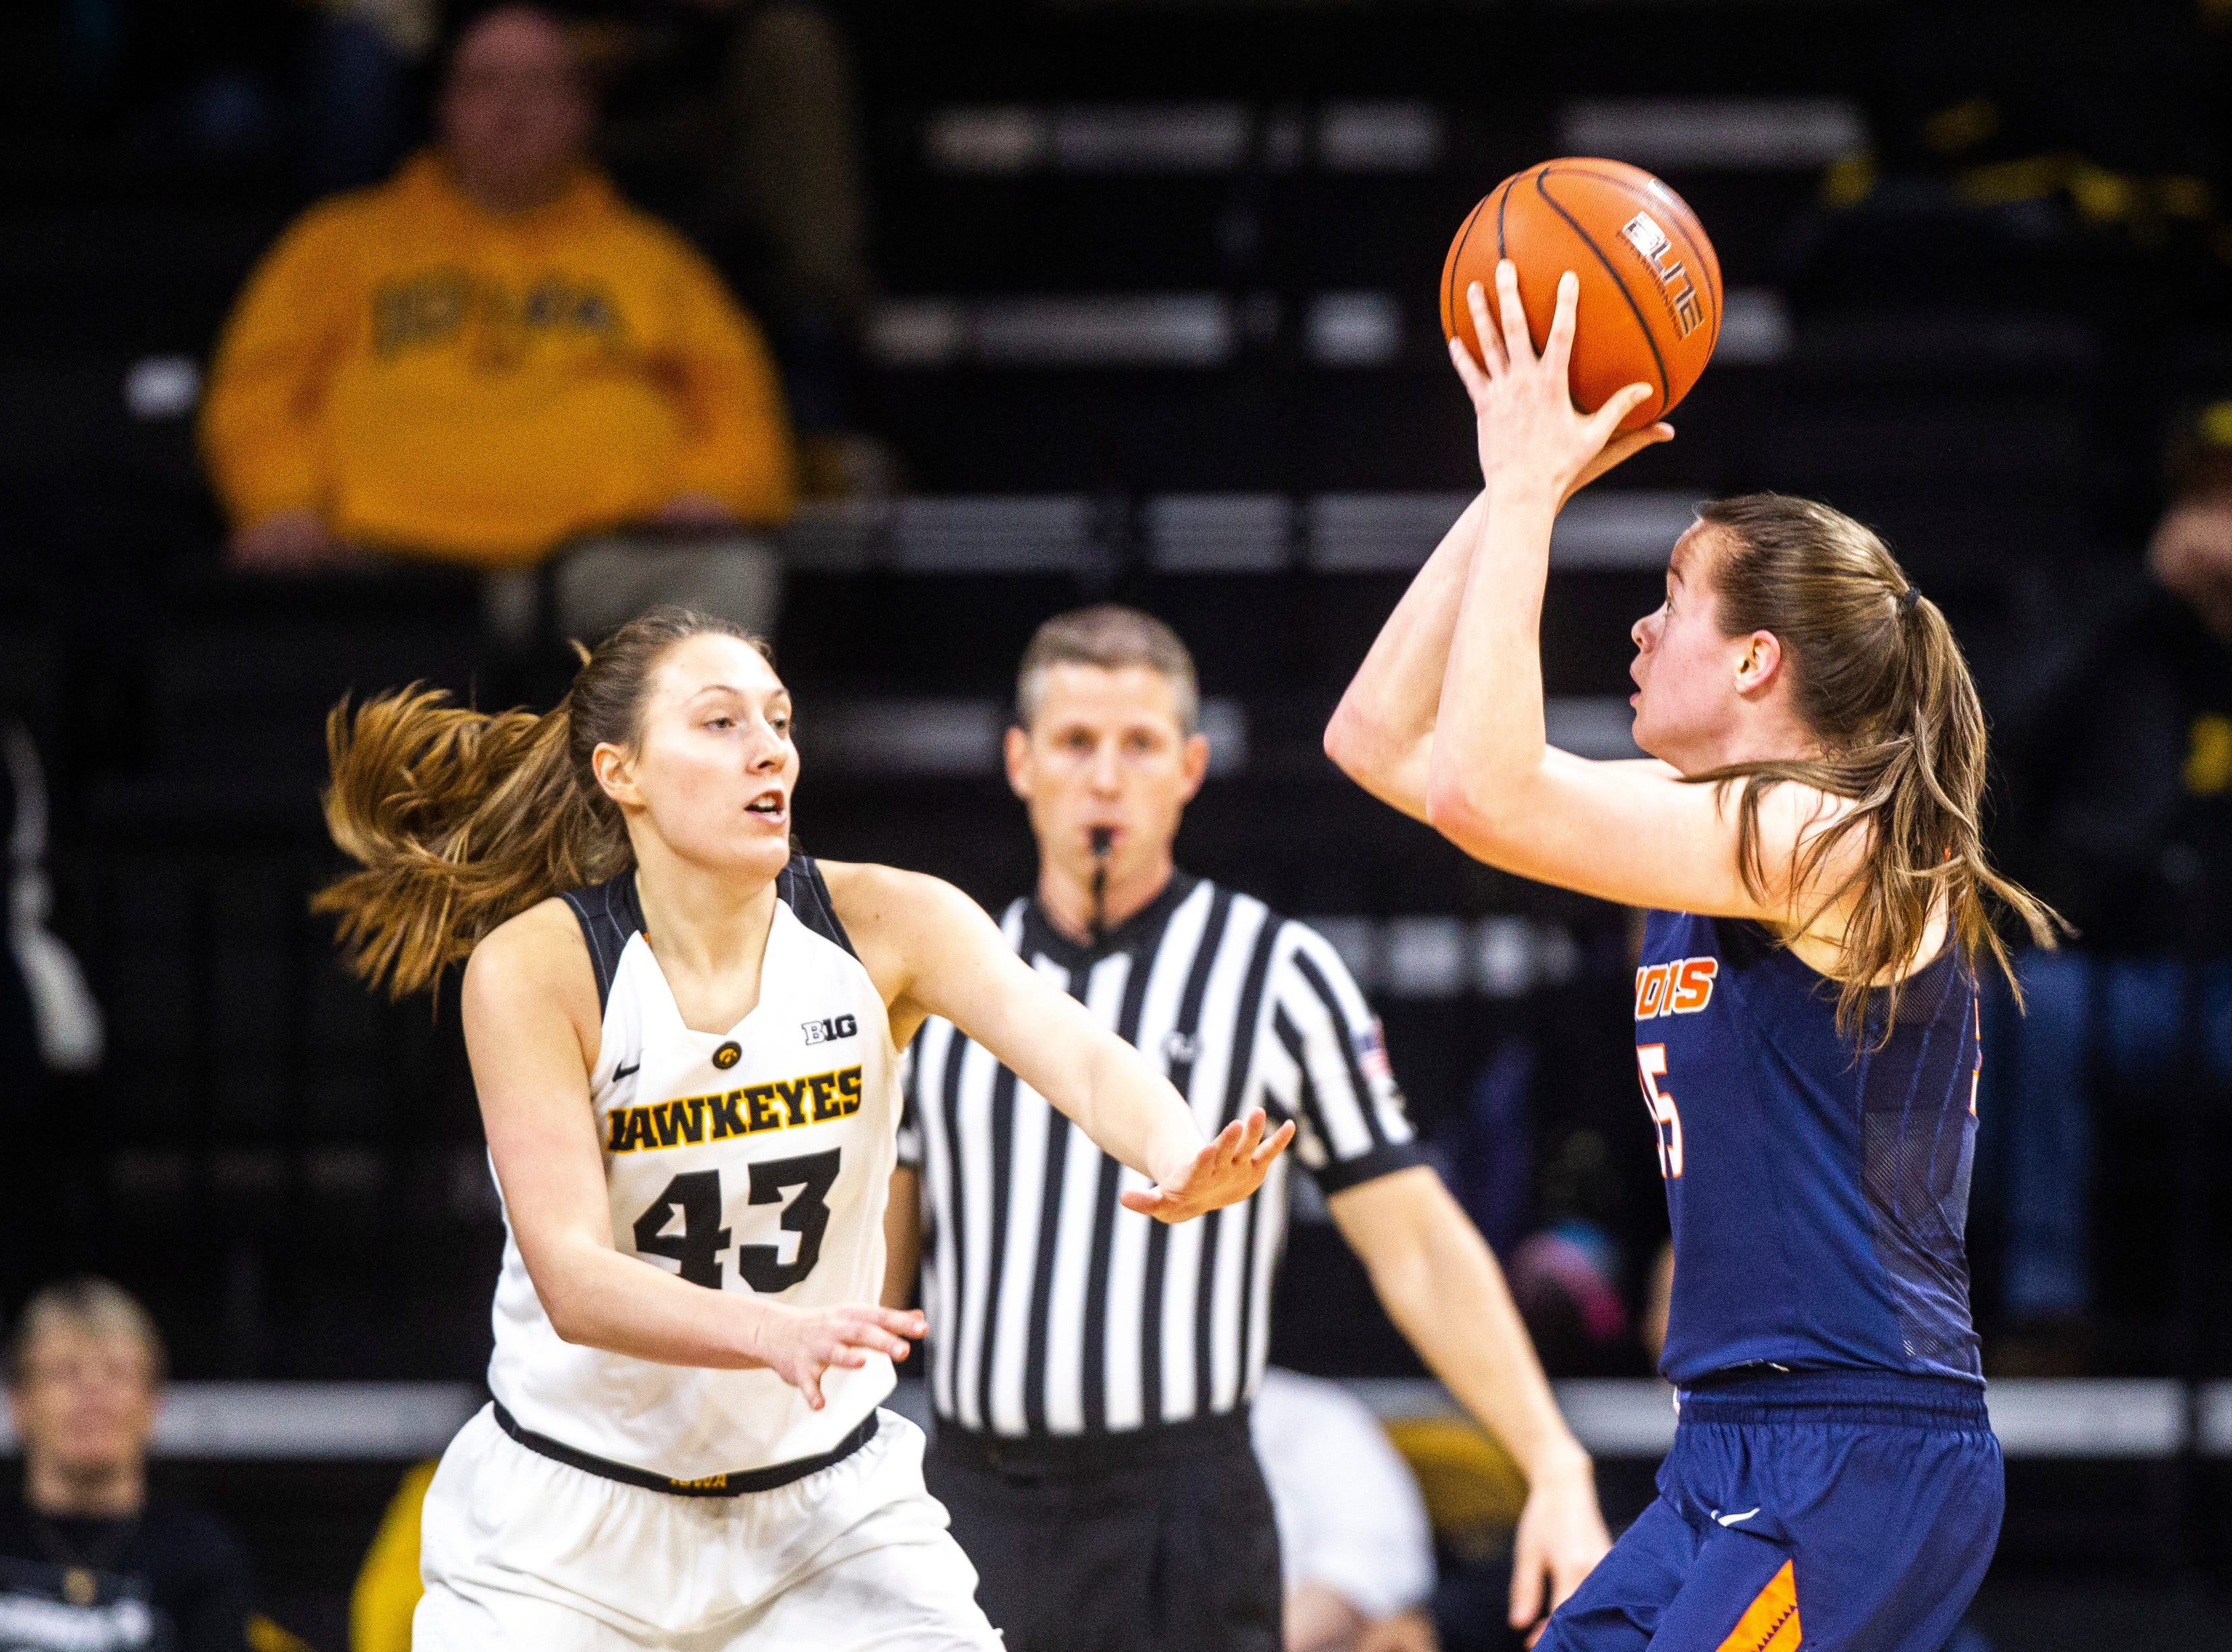 Iowa forward Amanda Ollinger (43) defends Illinois forward Alex Wittinger during a NCAA Big Ten Conference women's basketball game on Thursday, Feb. 14, 2019 at Carver-Hawkeye Arena in Iowa City, Iowa.